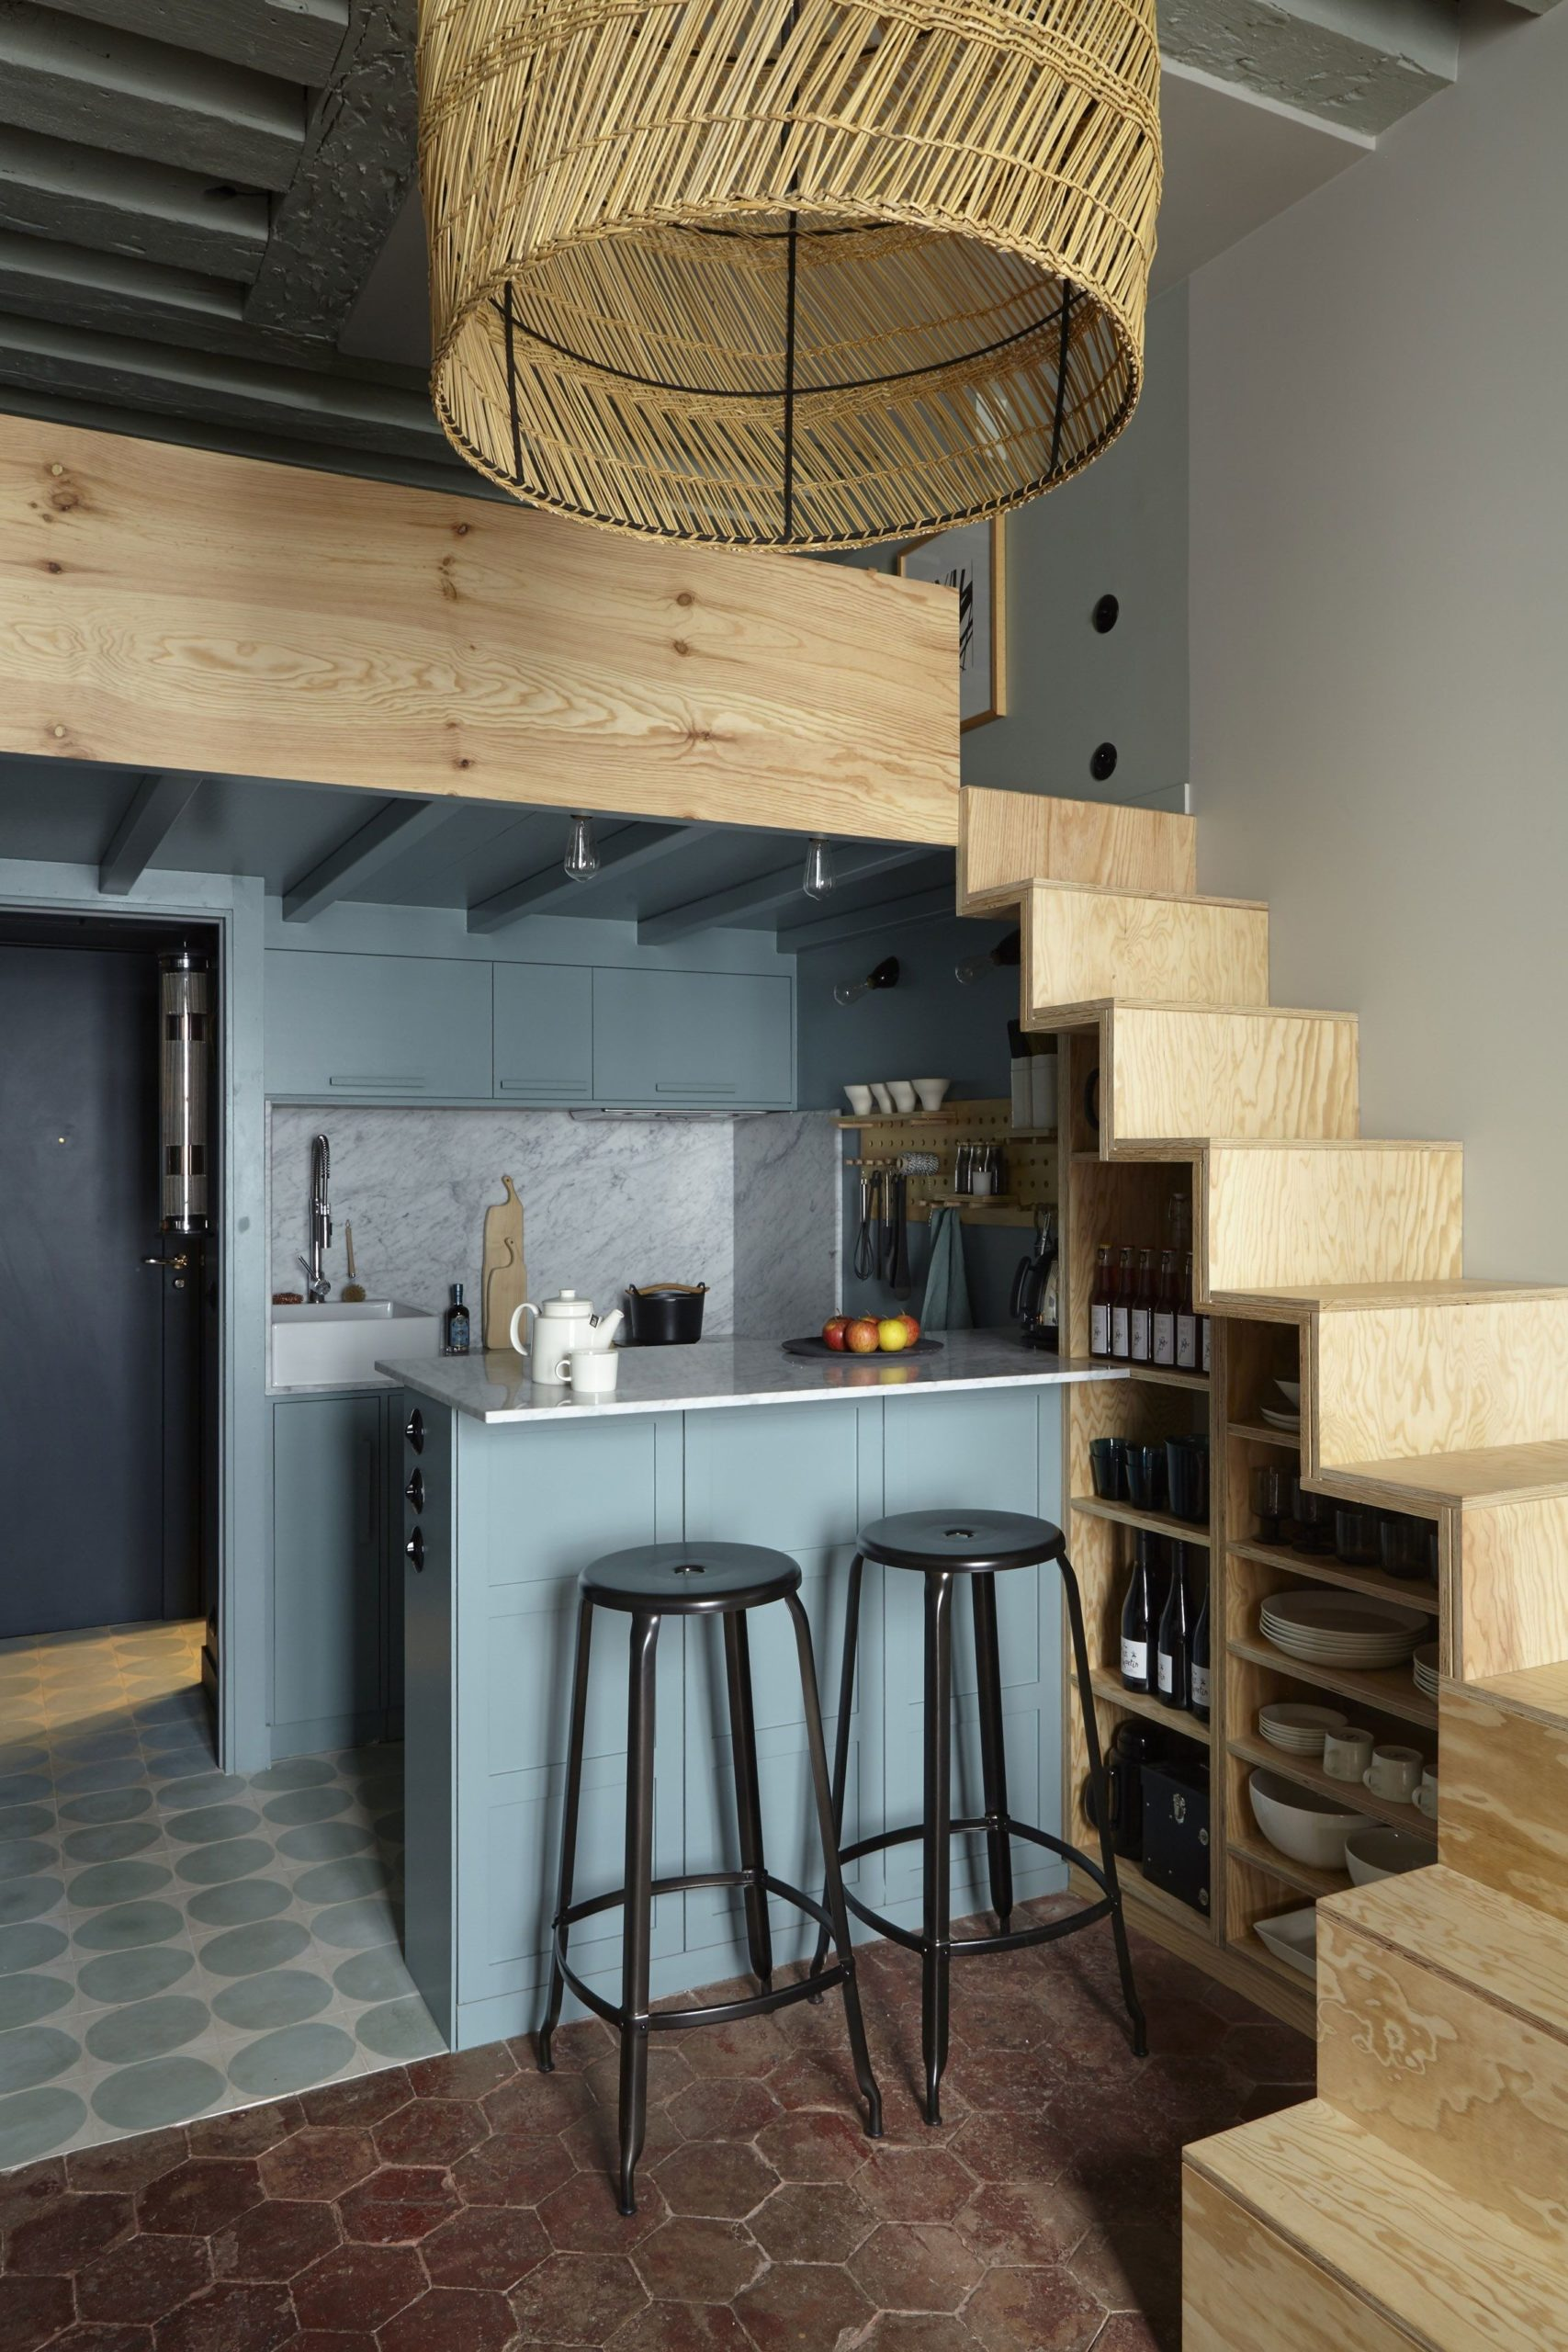 woodend-staircase-in-loft-11545-scaled